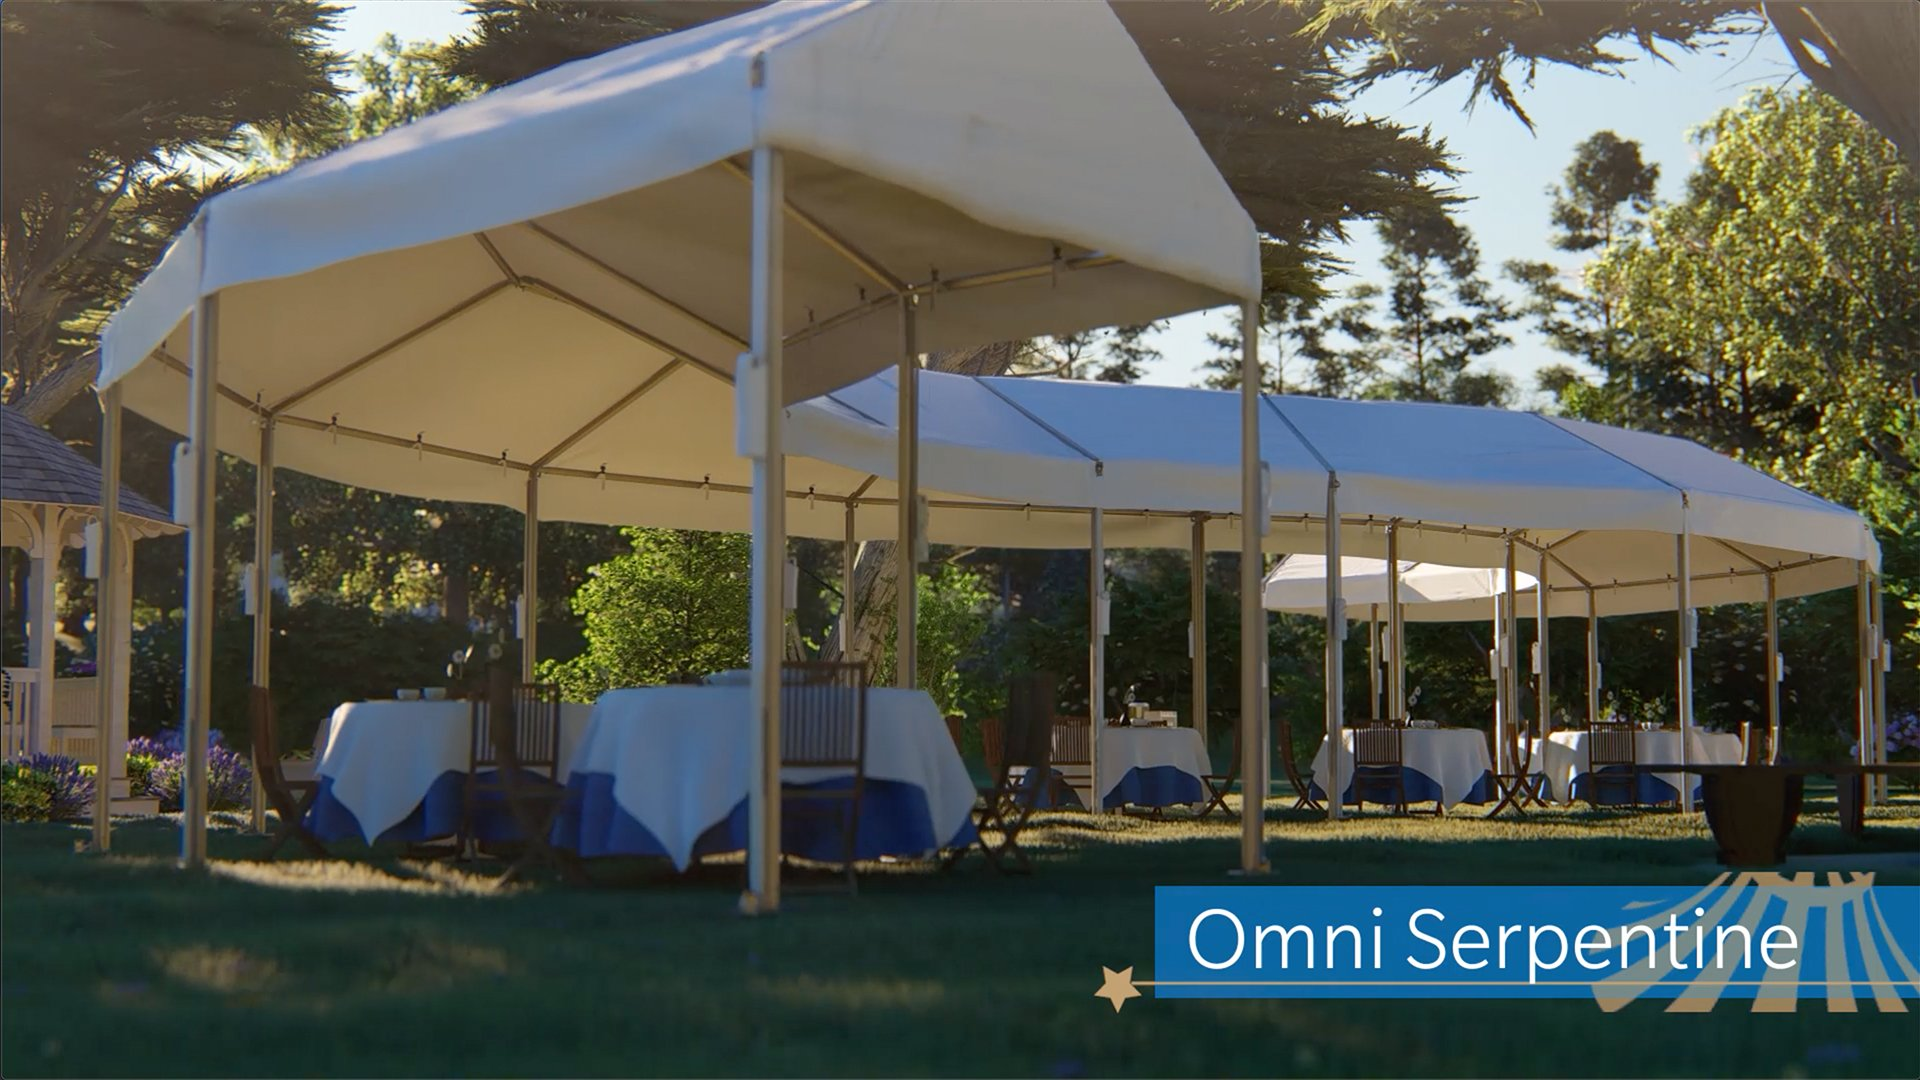 Omni Serpentine Custom Shaped Event Tent